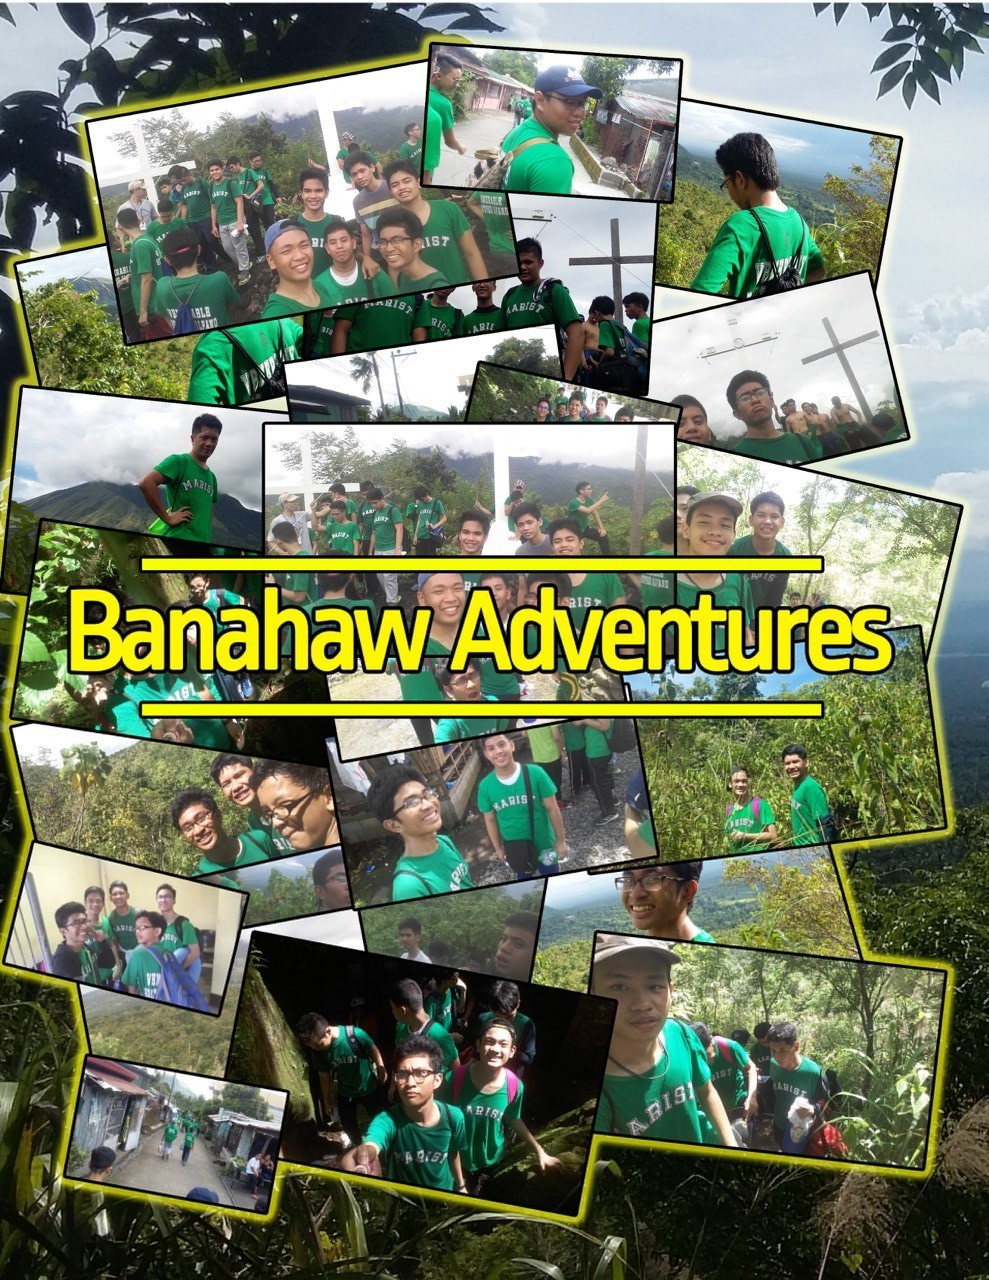 Banahaw Adventures